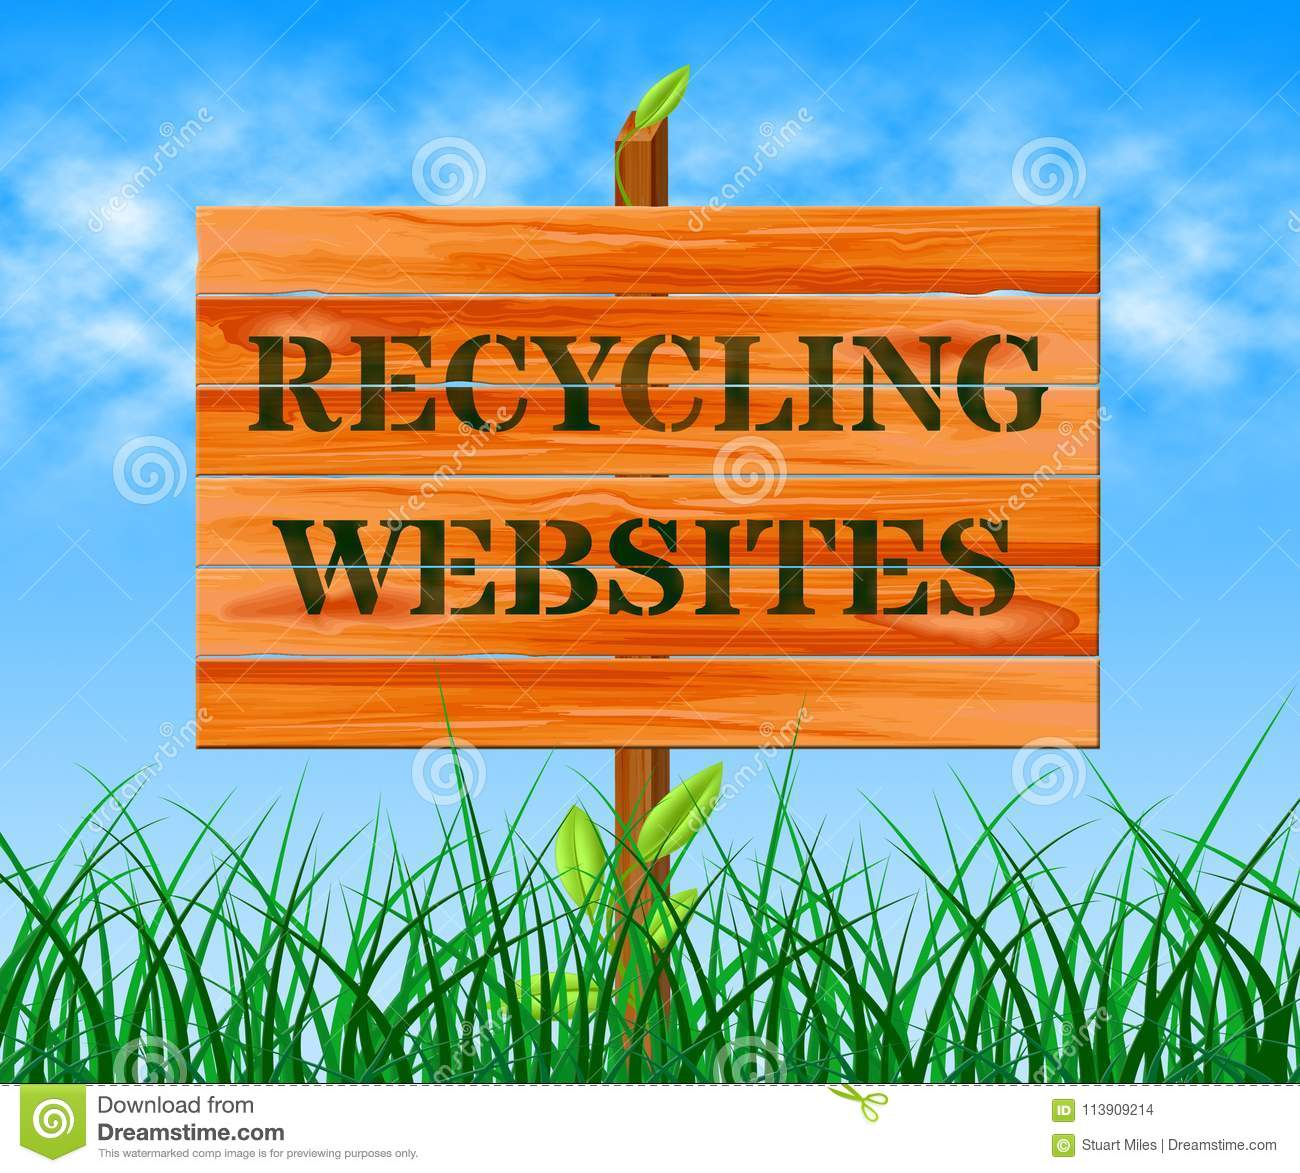 Recycling websites for adults are absolutely